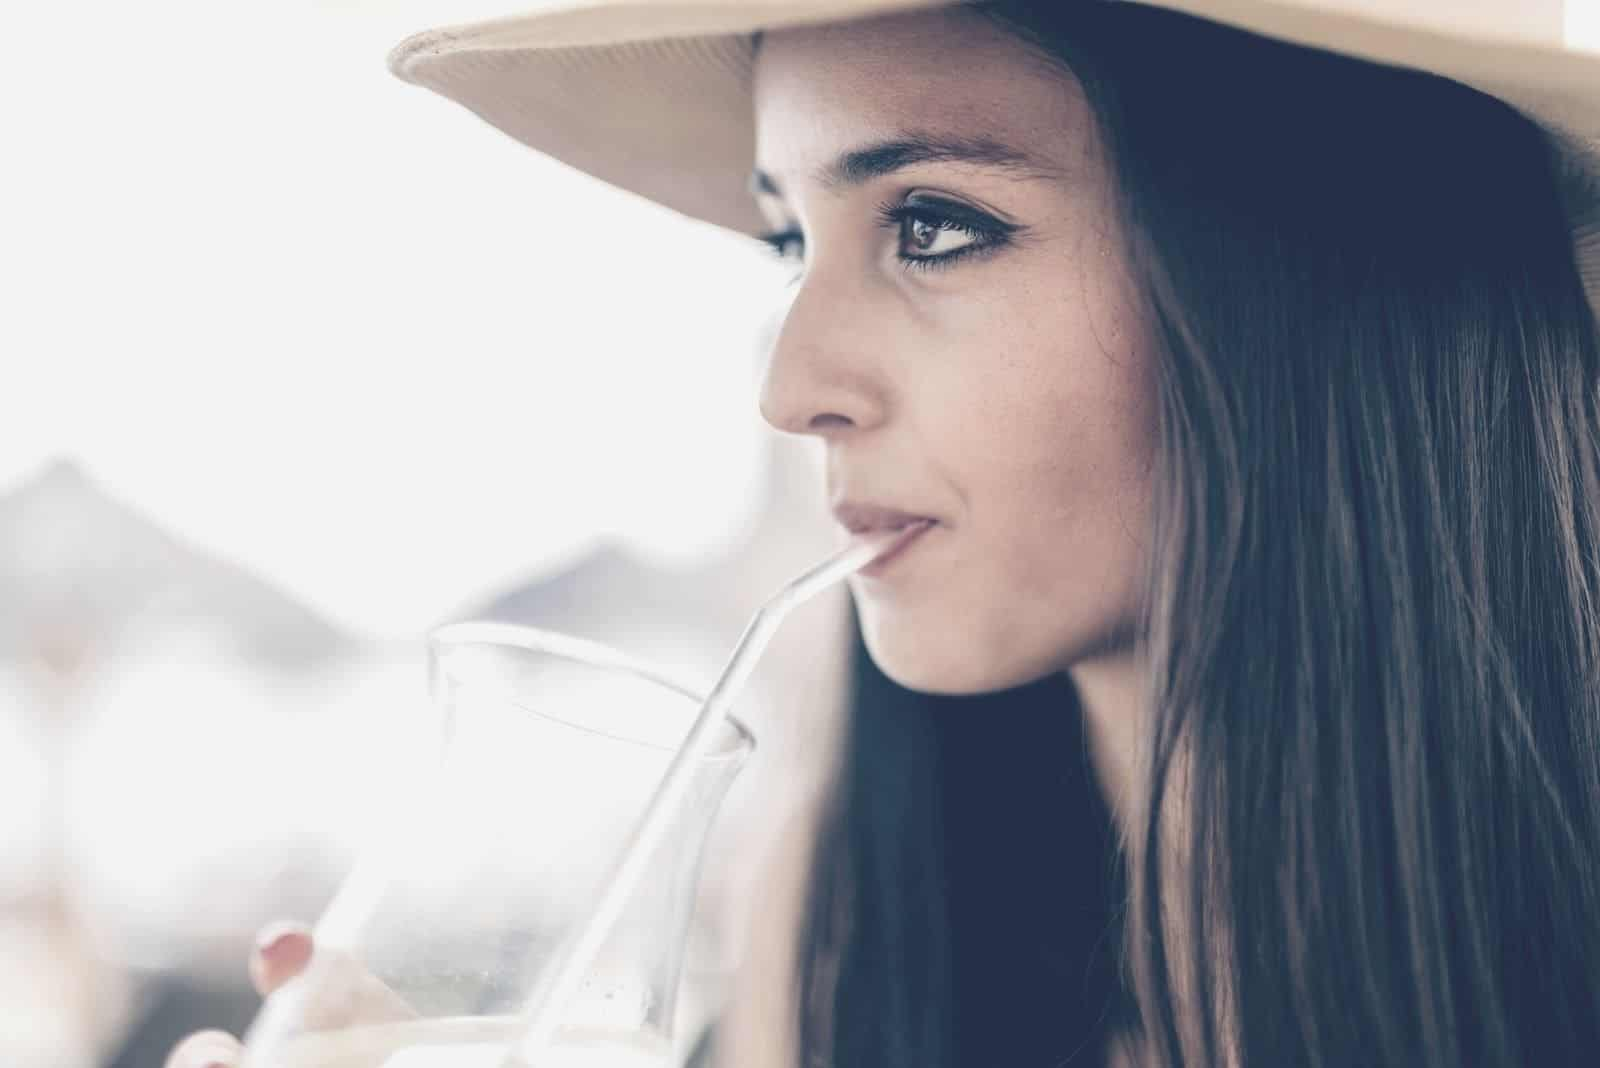 pensive woman drinking beverage in sideview close up photo wearing a hat